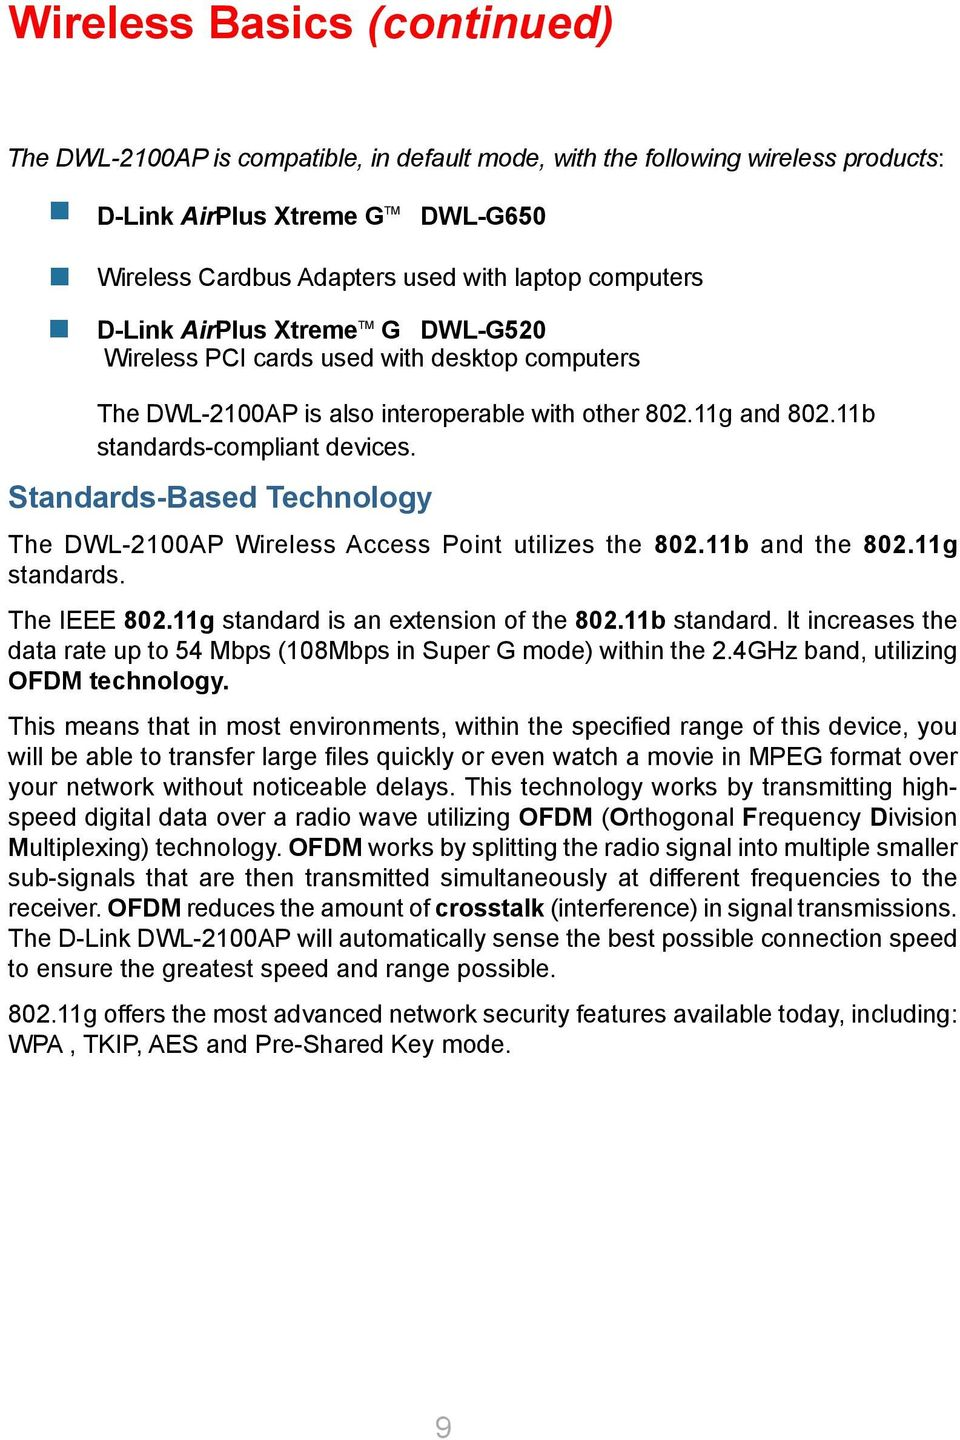 Standards-Based Technology The DWL-2100AP Wireless Access Point utilizes the 802.11b and the 802.11g standards. The IEEE 802.11g standard is an extension of the 802.11b standard.